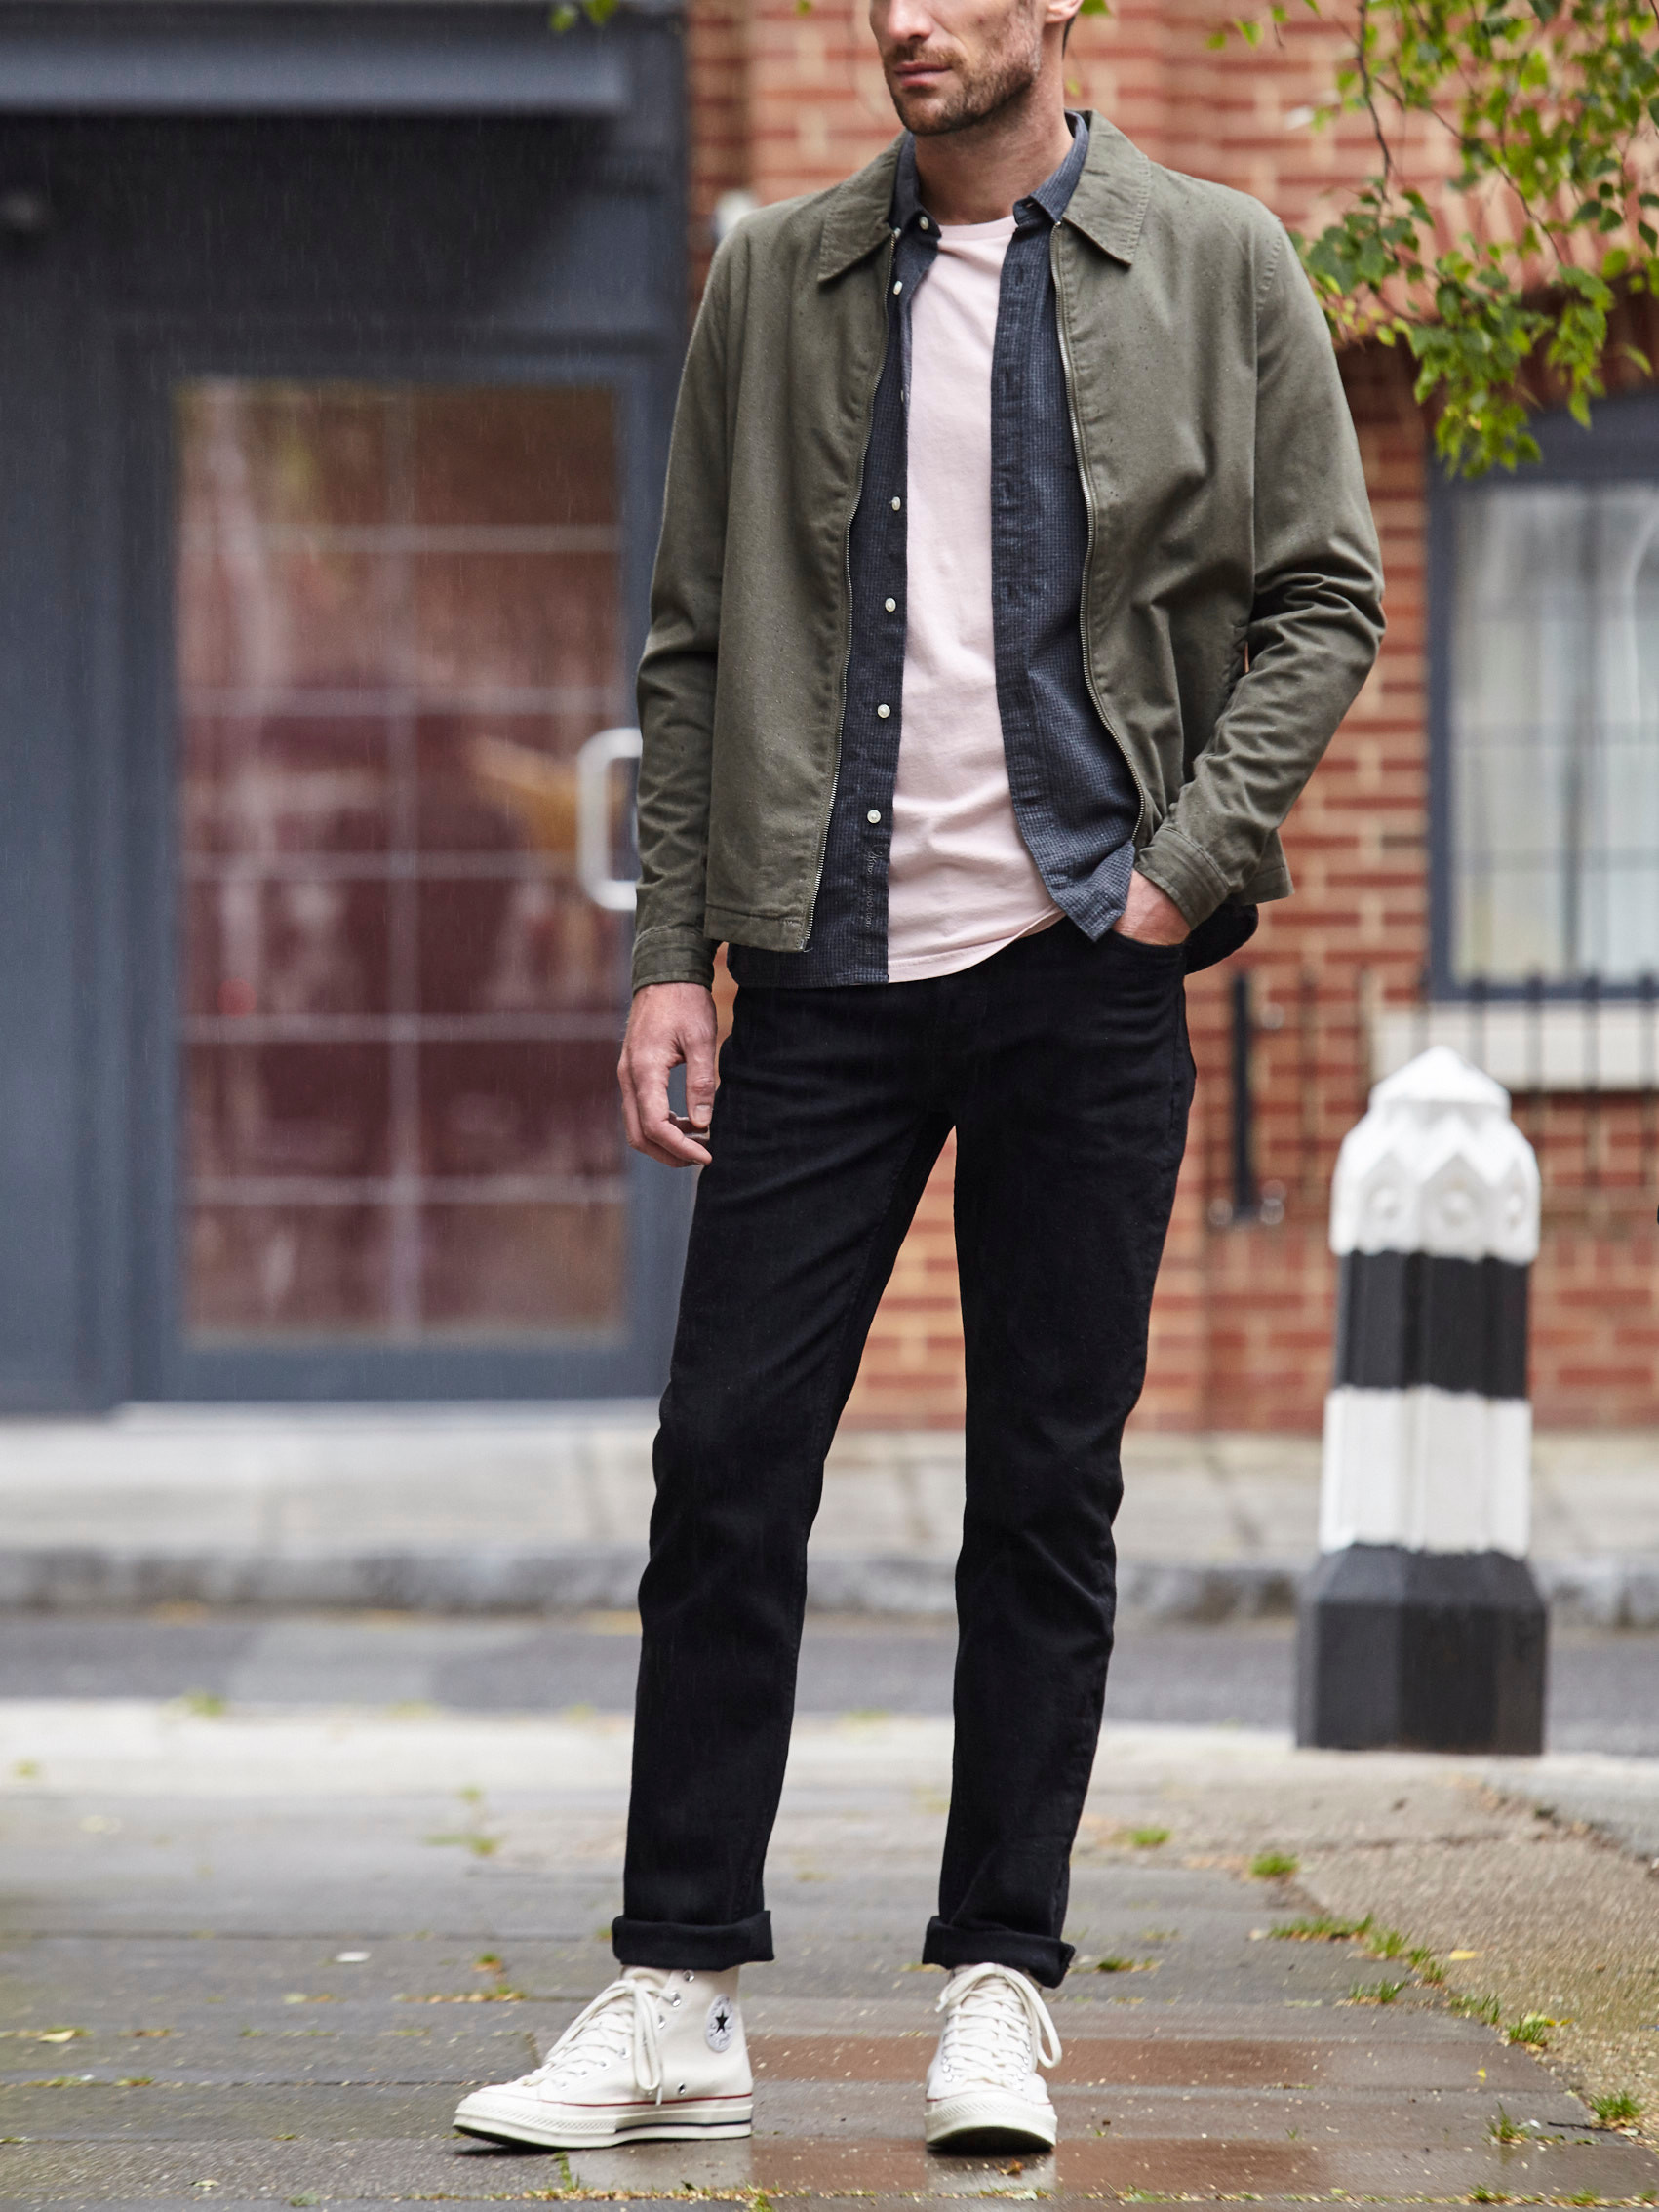 Men's outfit idea for 2021 with overshirt, blue casual shirt, pale-colored crew neck t-shirt, black jeans, converse. Suitable for spring and fall.